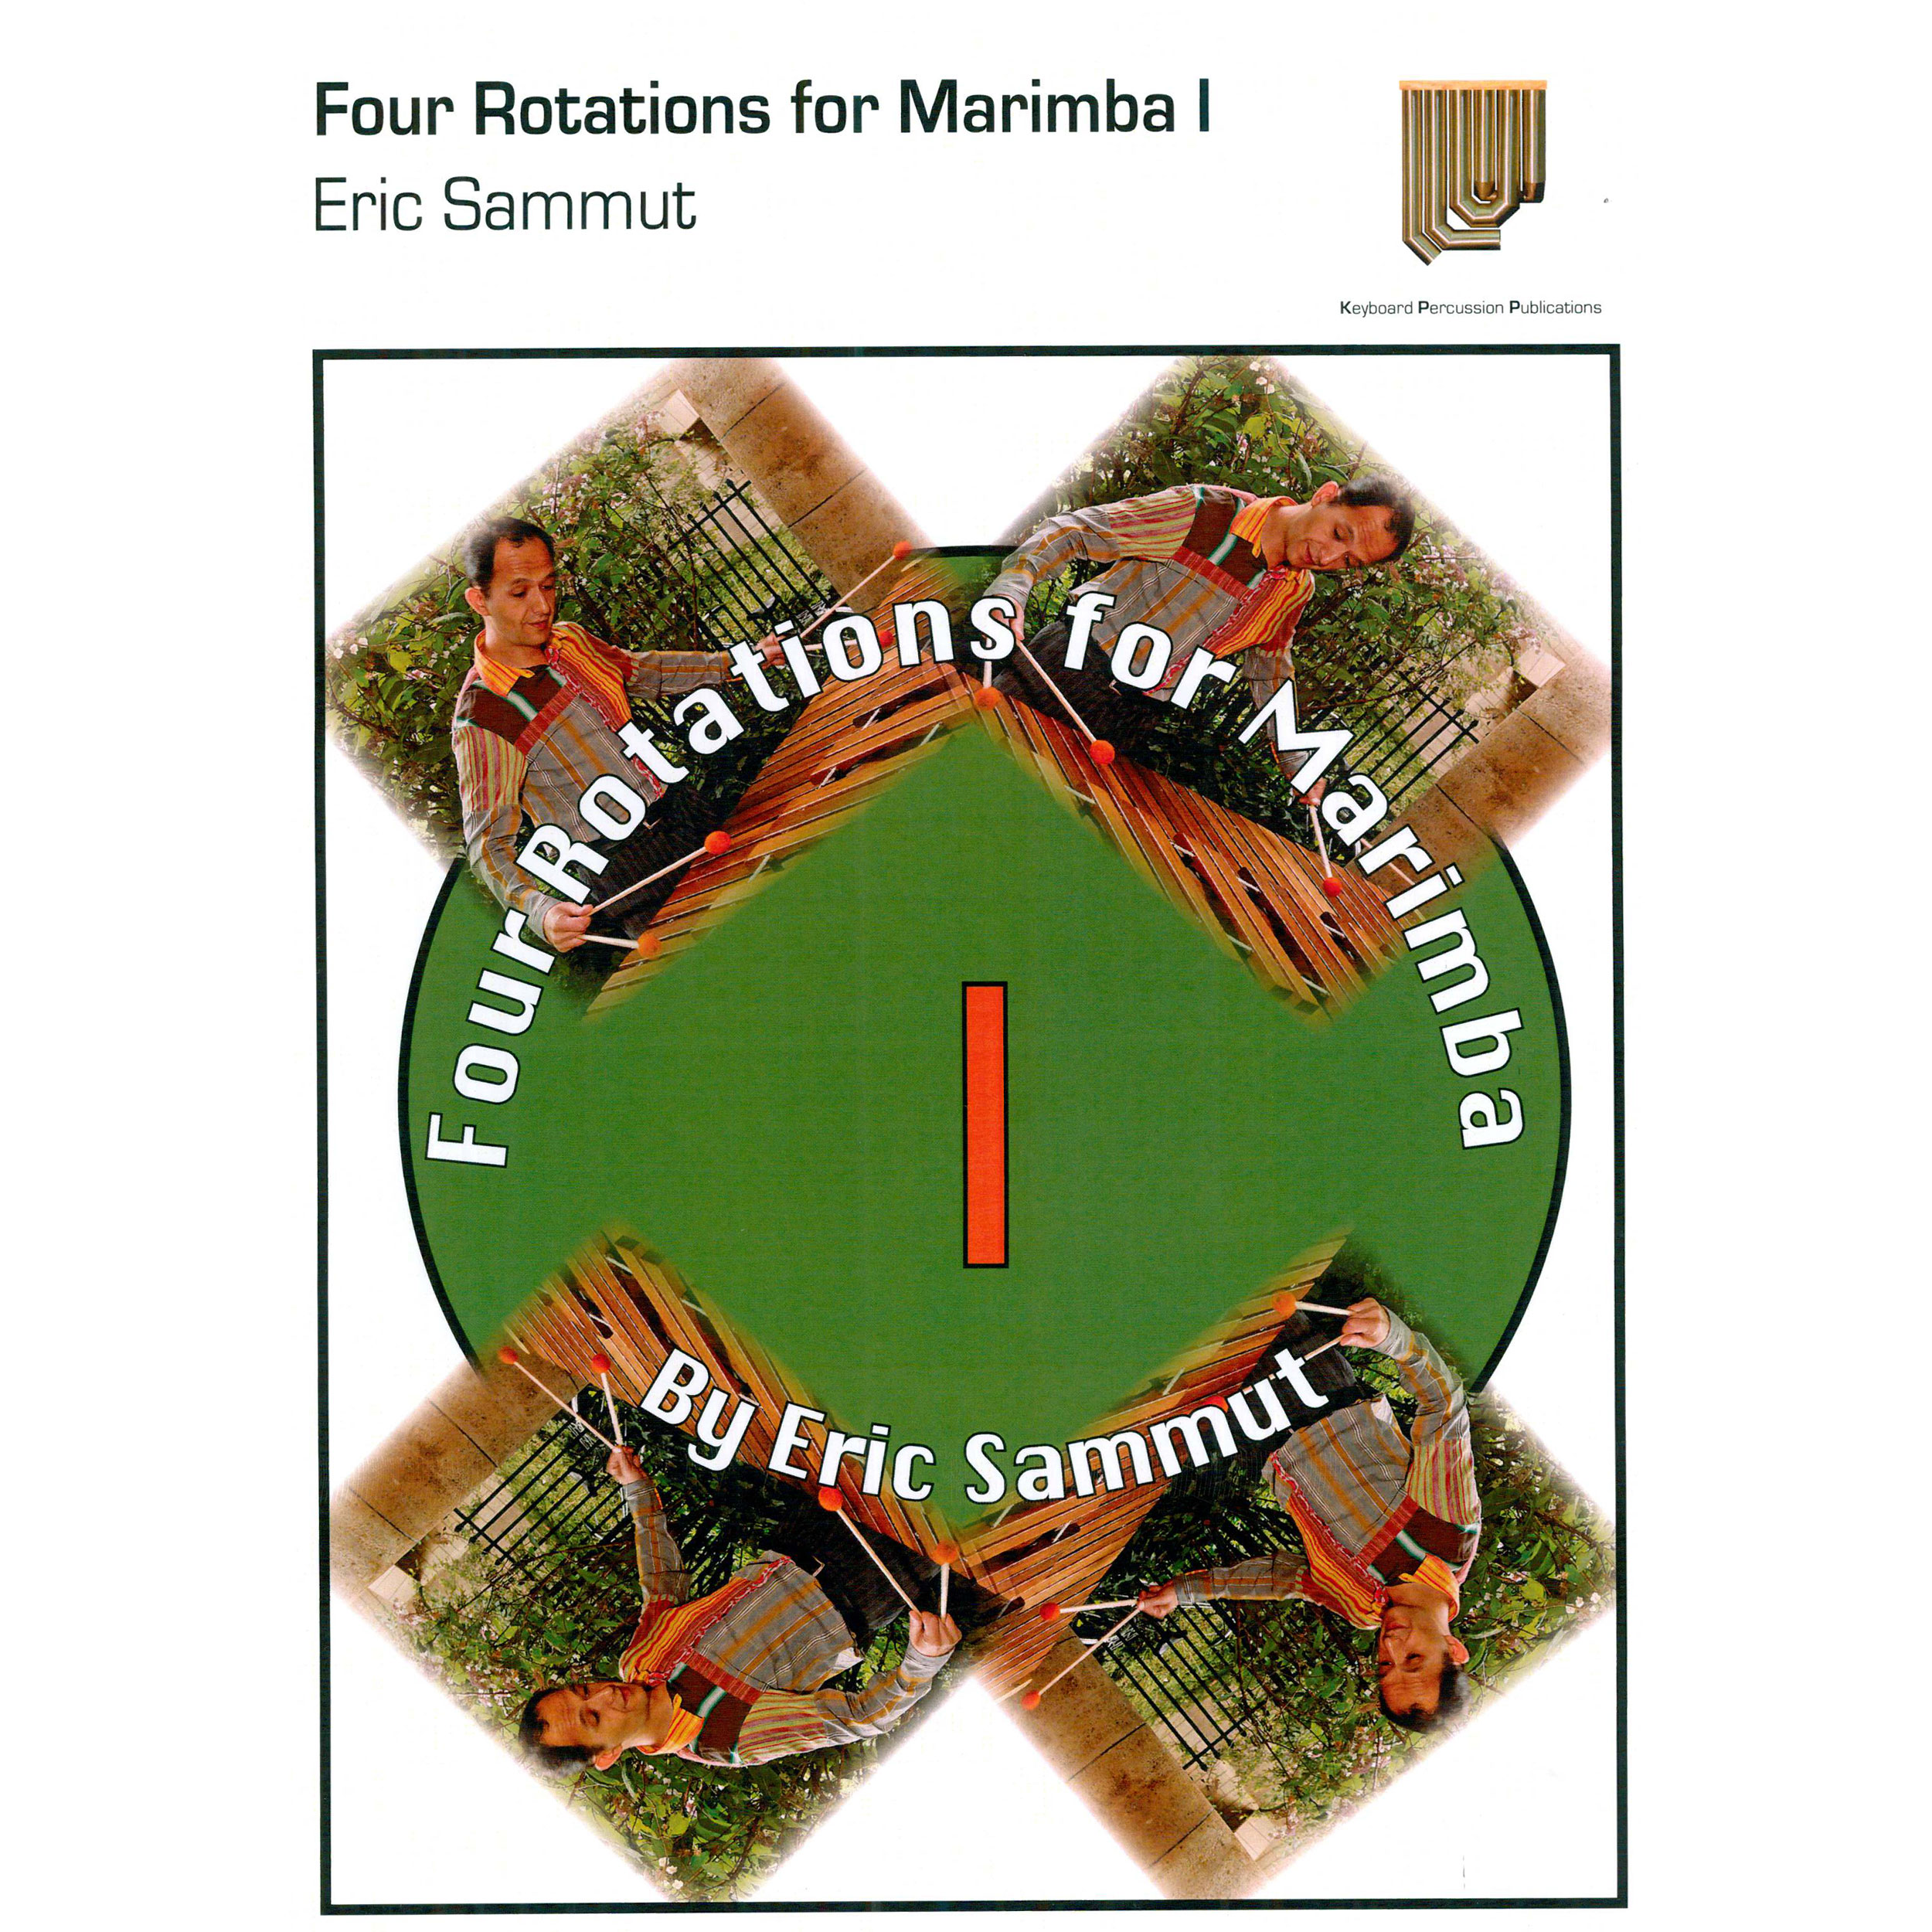 Four Rotations for Marimba I